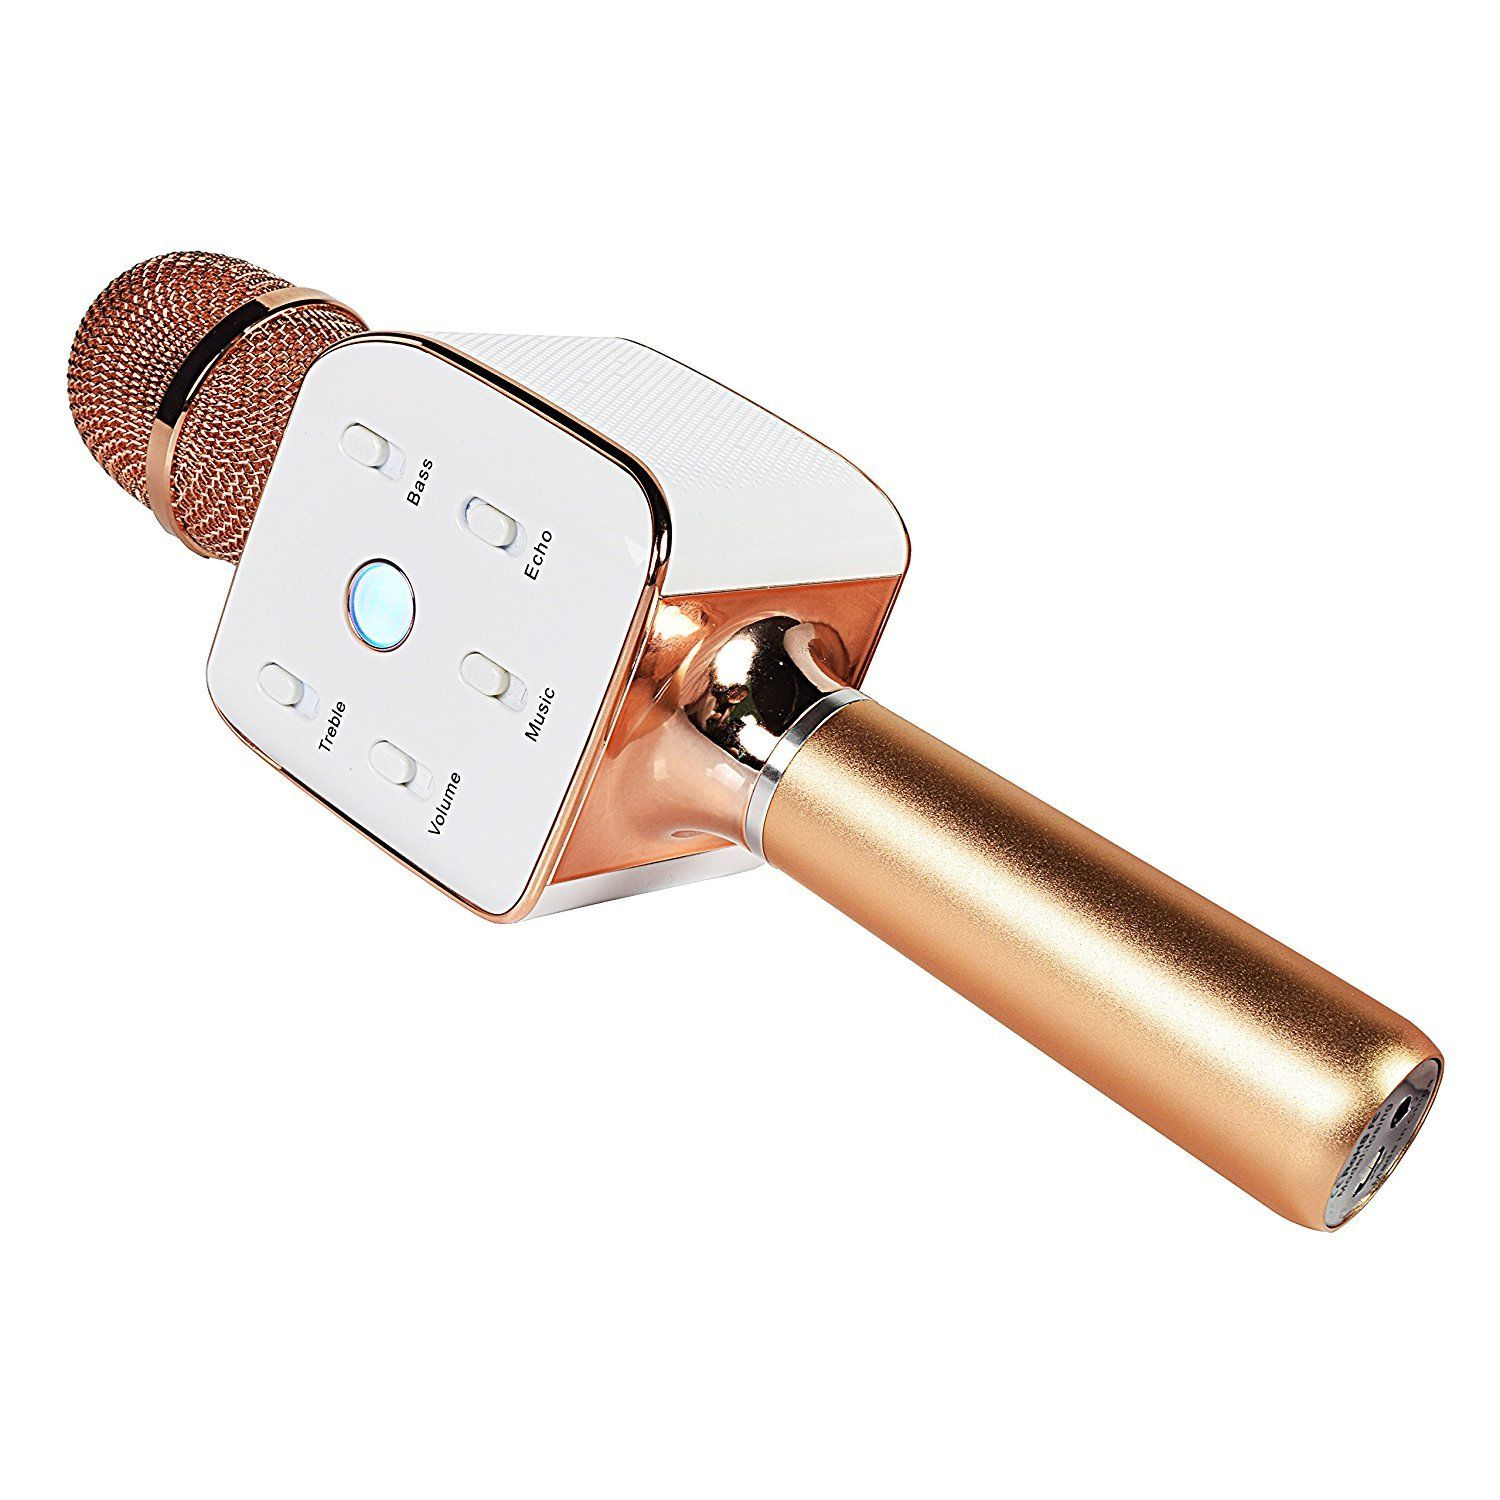 DIGITNOW Wireless Karaoke Player Portable Handheld Rose Golden Microphone Built-in Bluetooth Speaker Machine for Home KTV Singing Support Iphone Android Smartphone Ipad PC